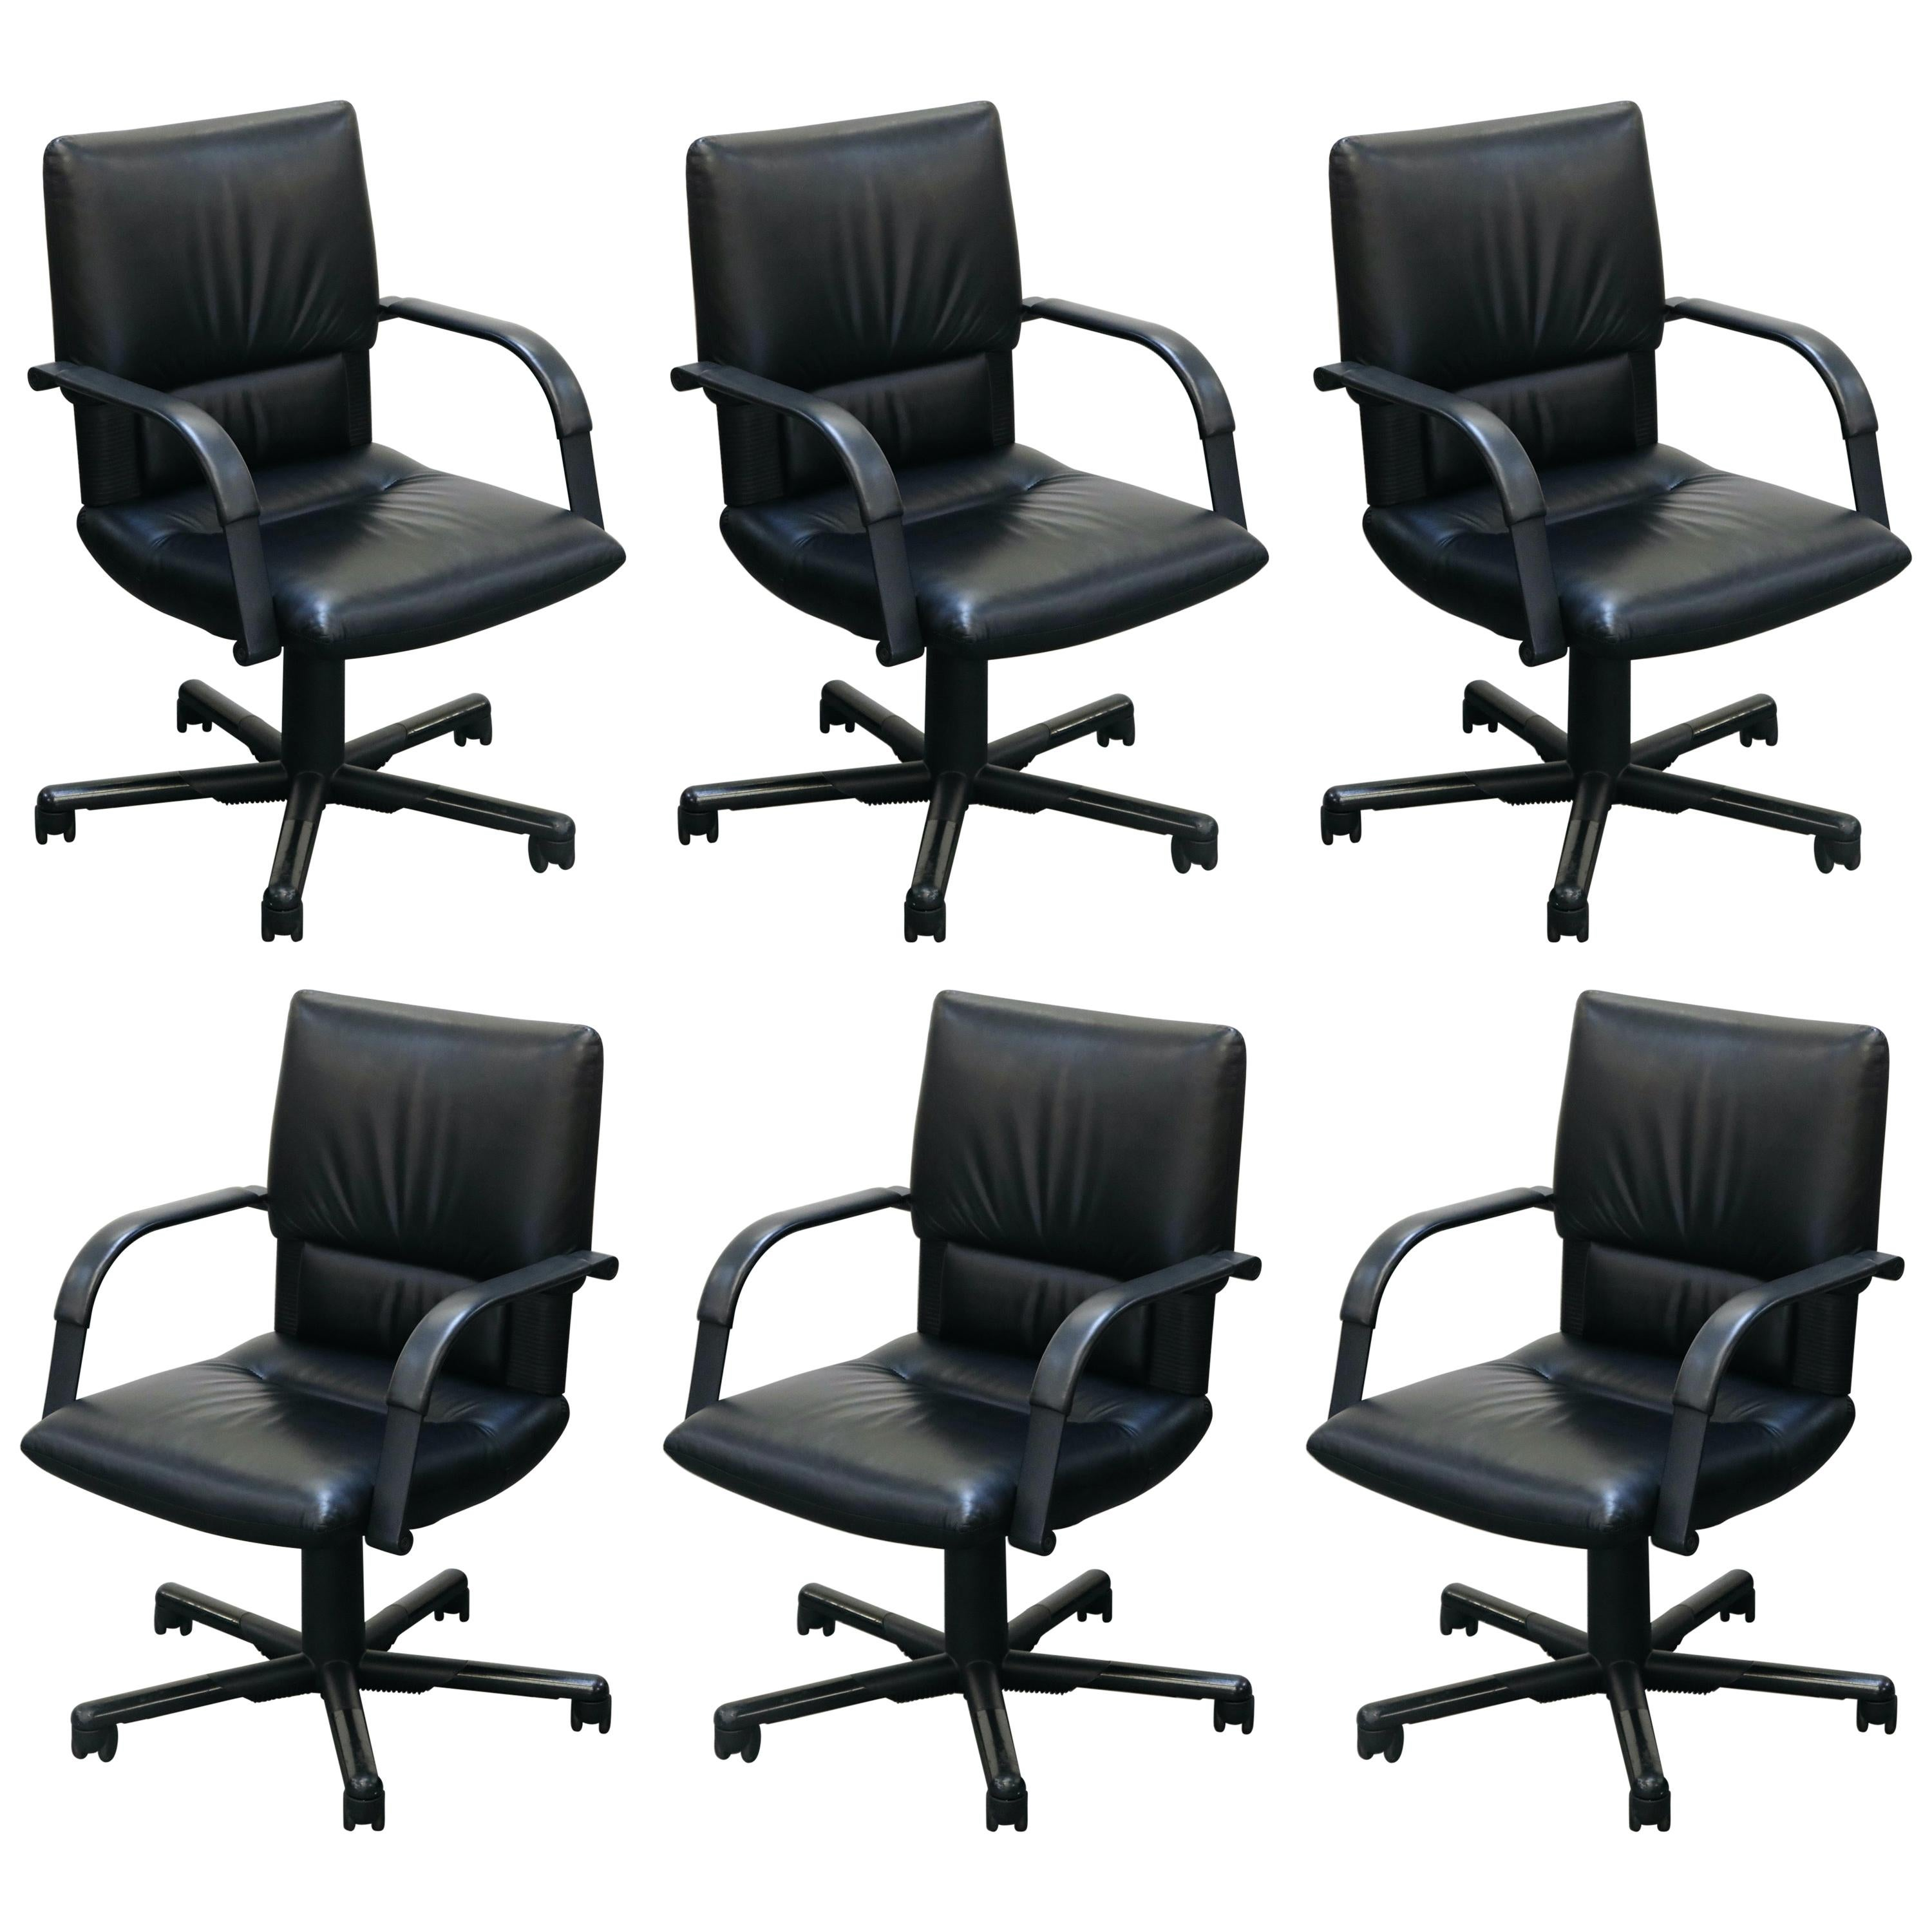 Mario Bellini Post-Modern Executive Desk Chair for Vitra, Signed and Dated 1992